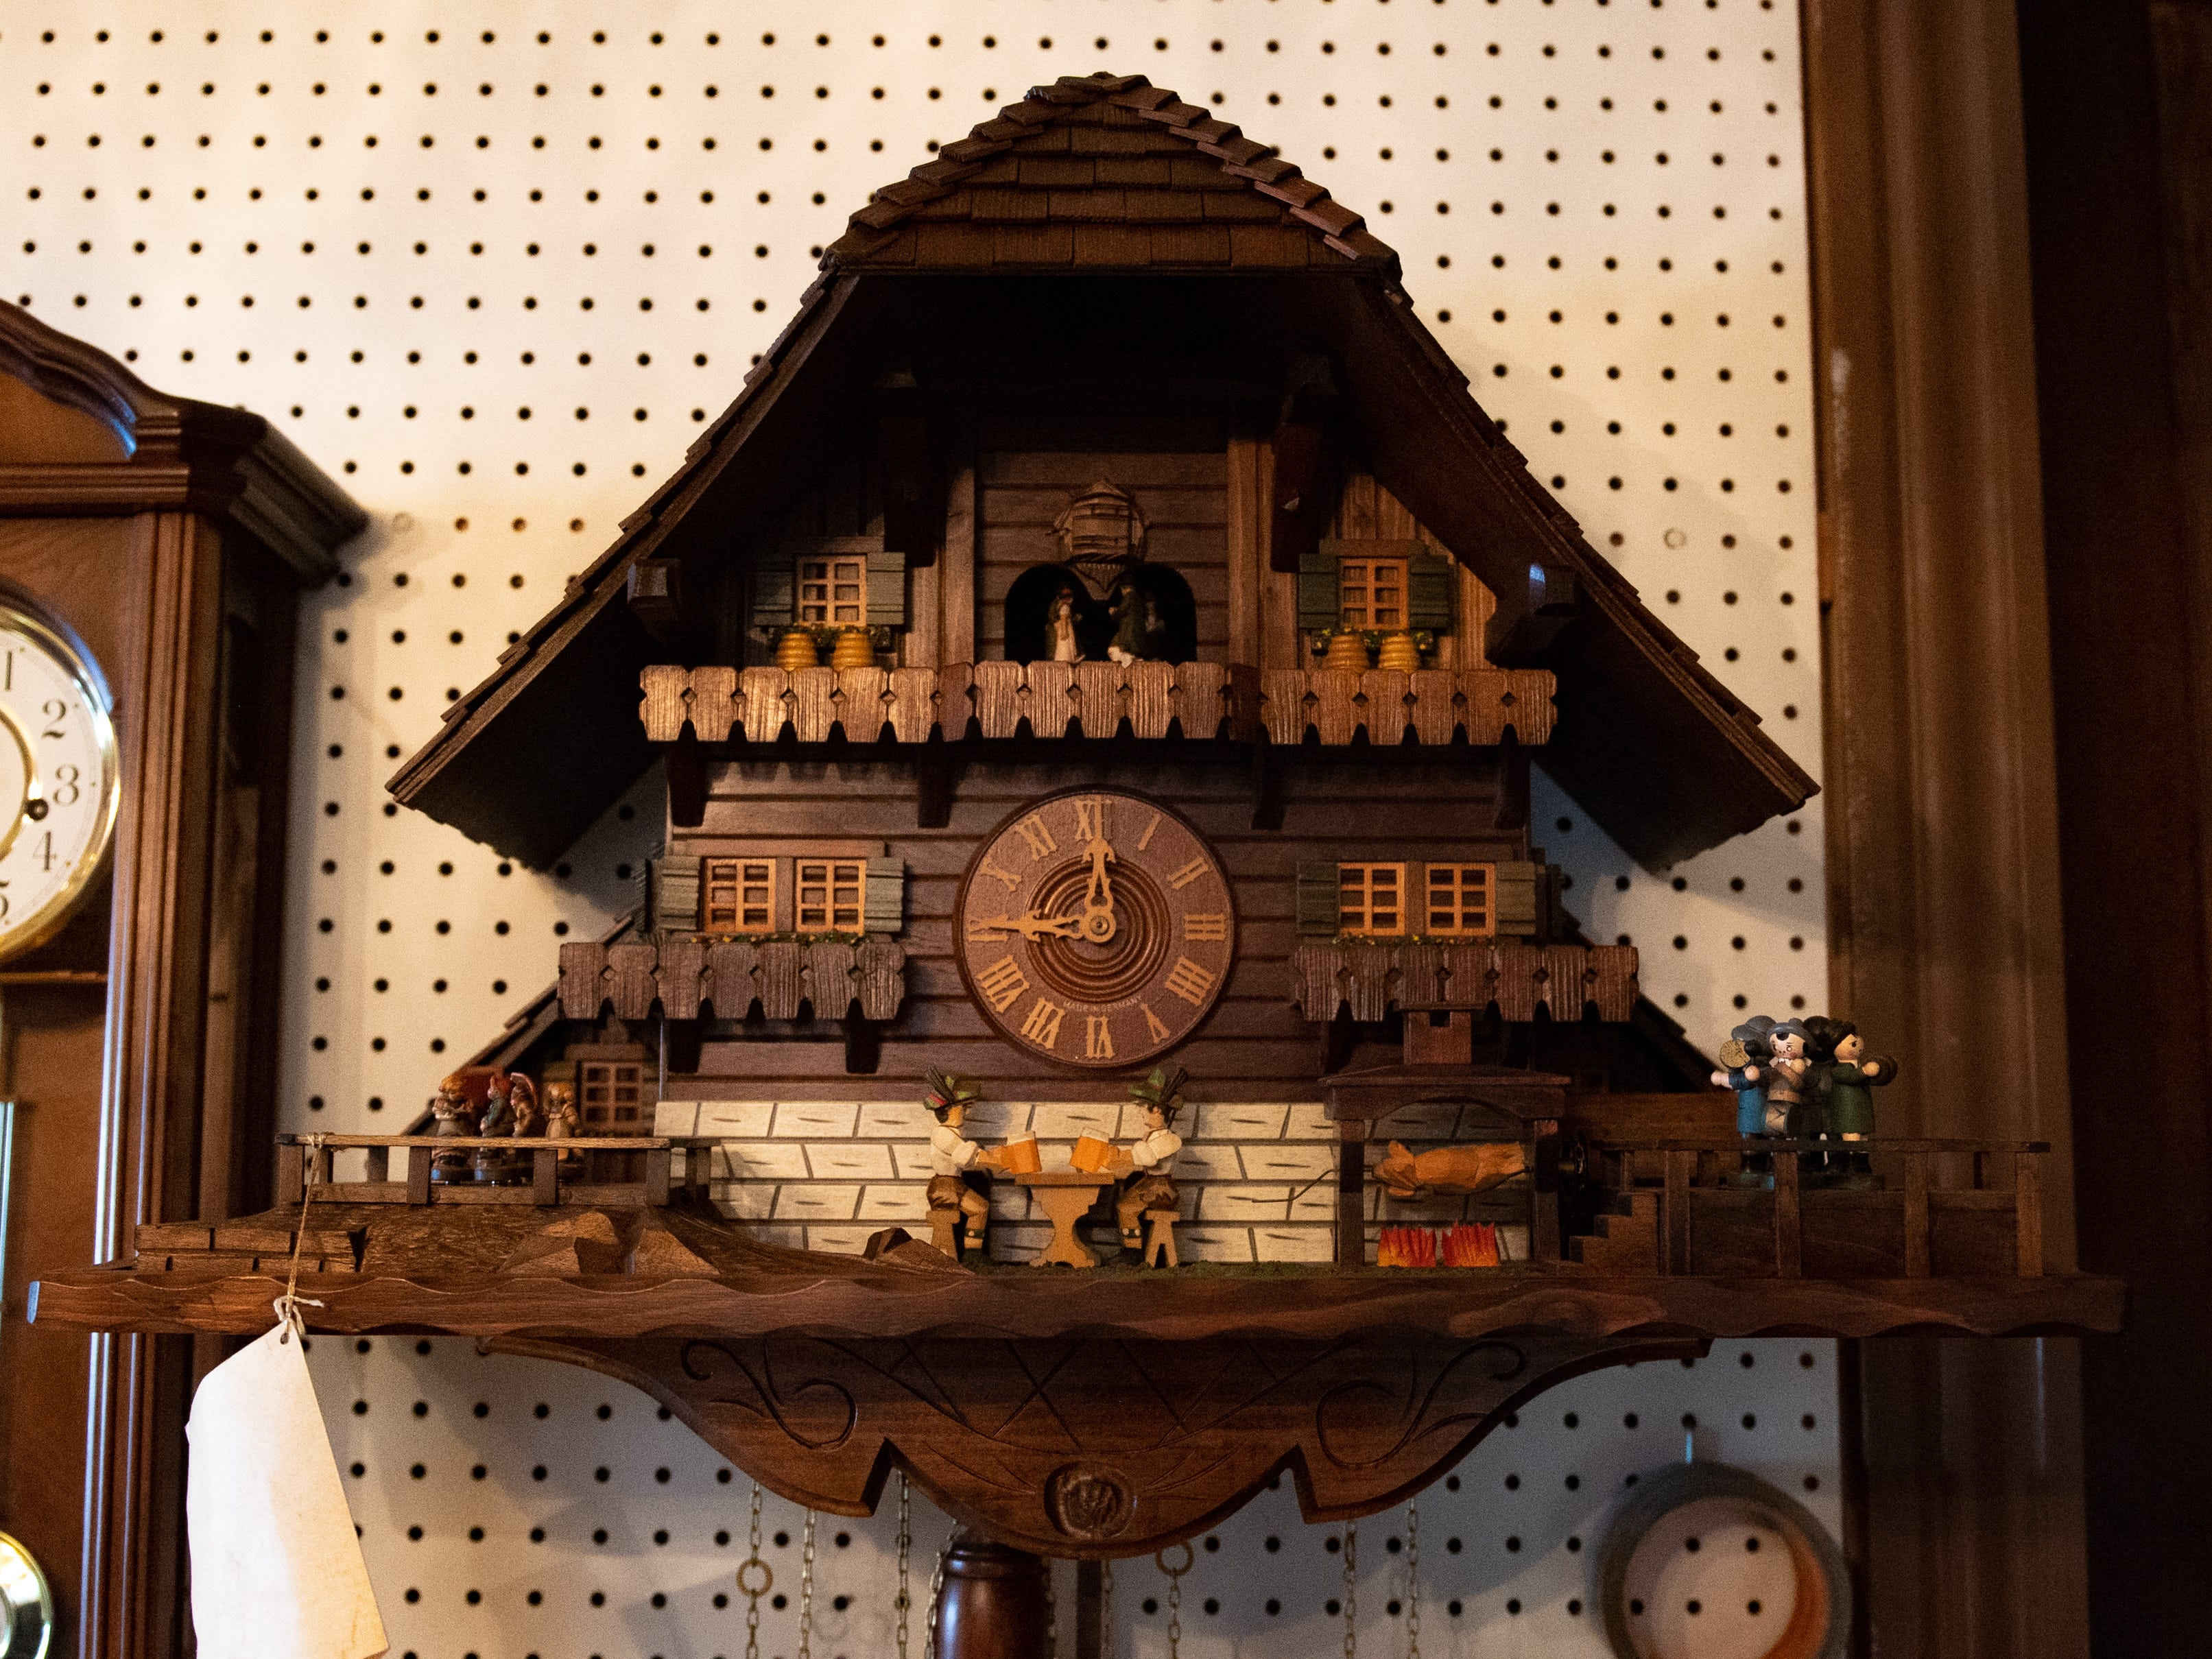 Big complicated clocks are also in the workshop area, January 30, 2019.